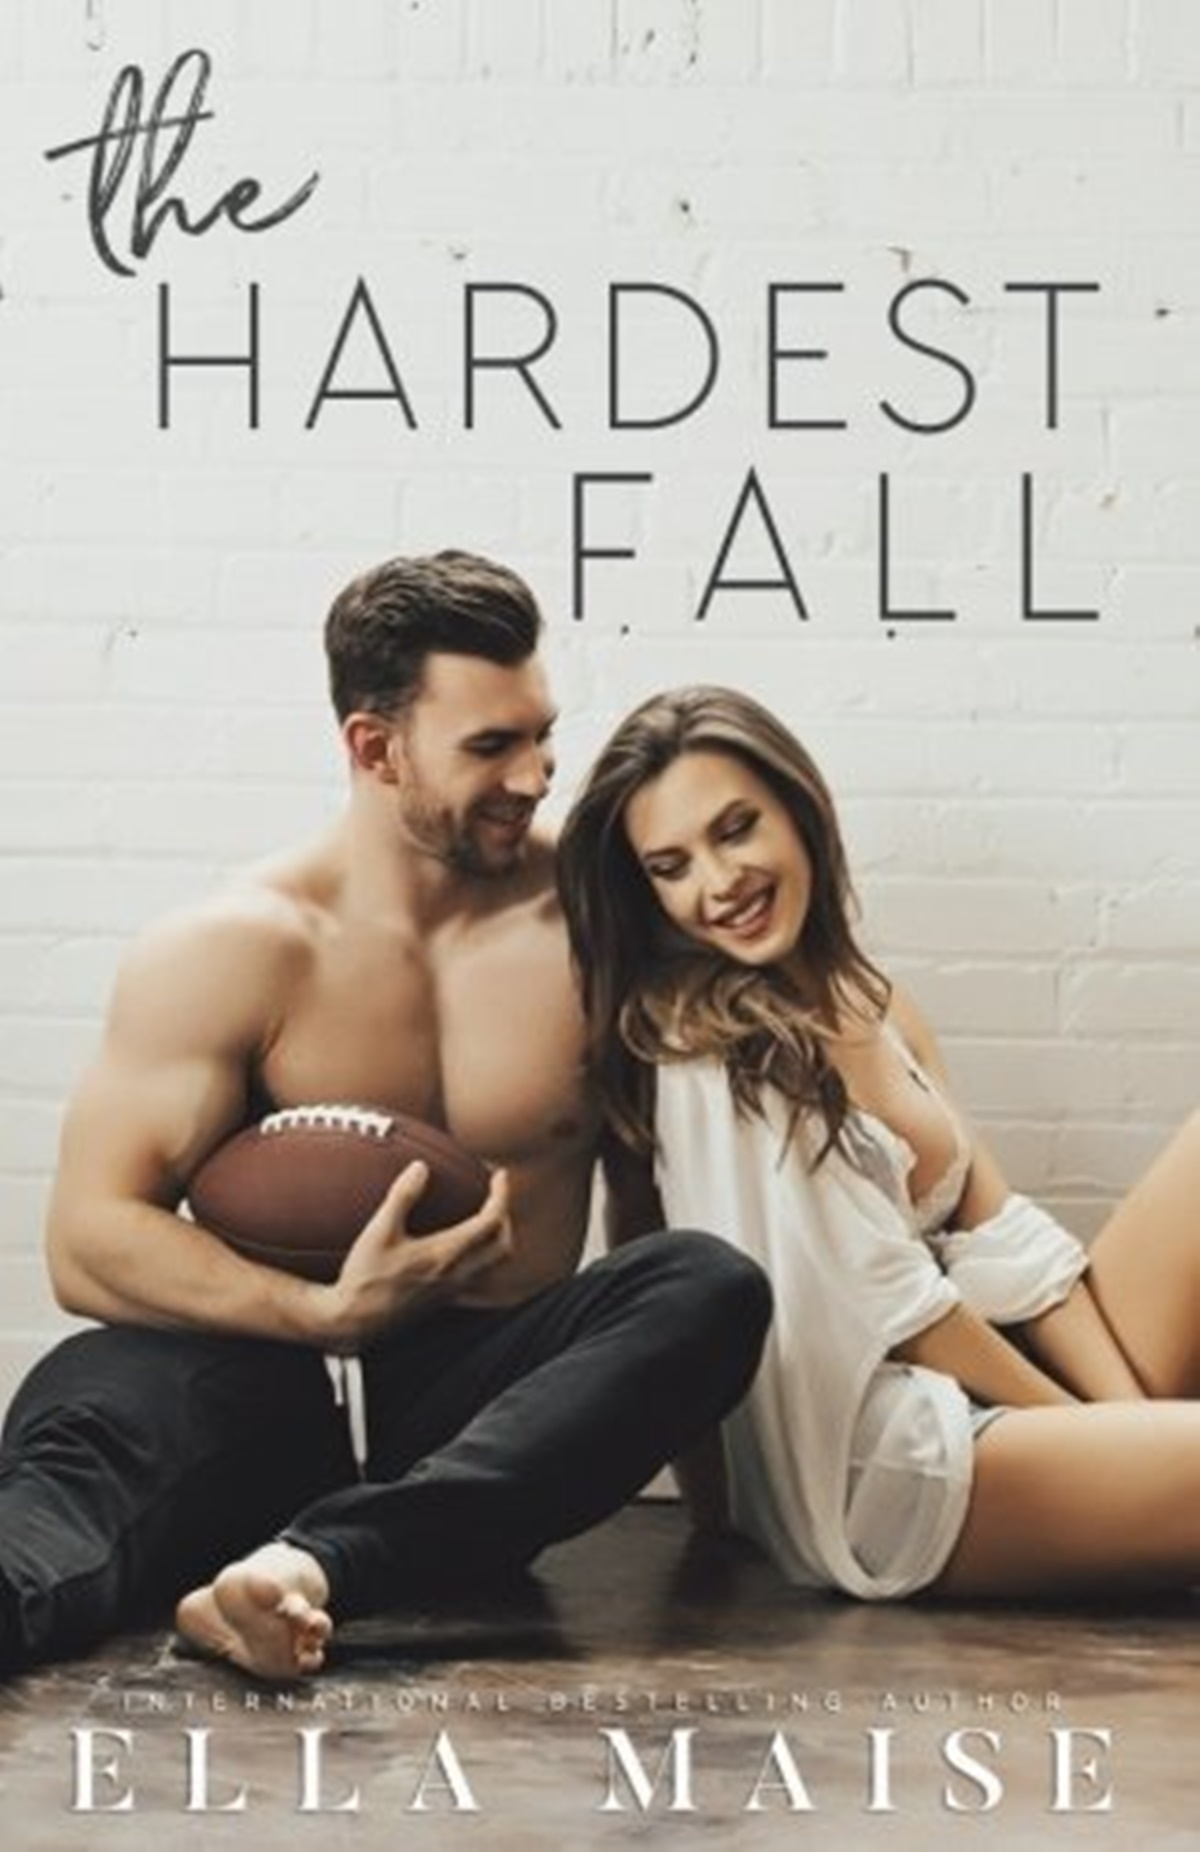 Sports Romance Novels, cover of The Hardest Fall by Ella Maise, books